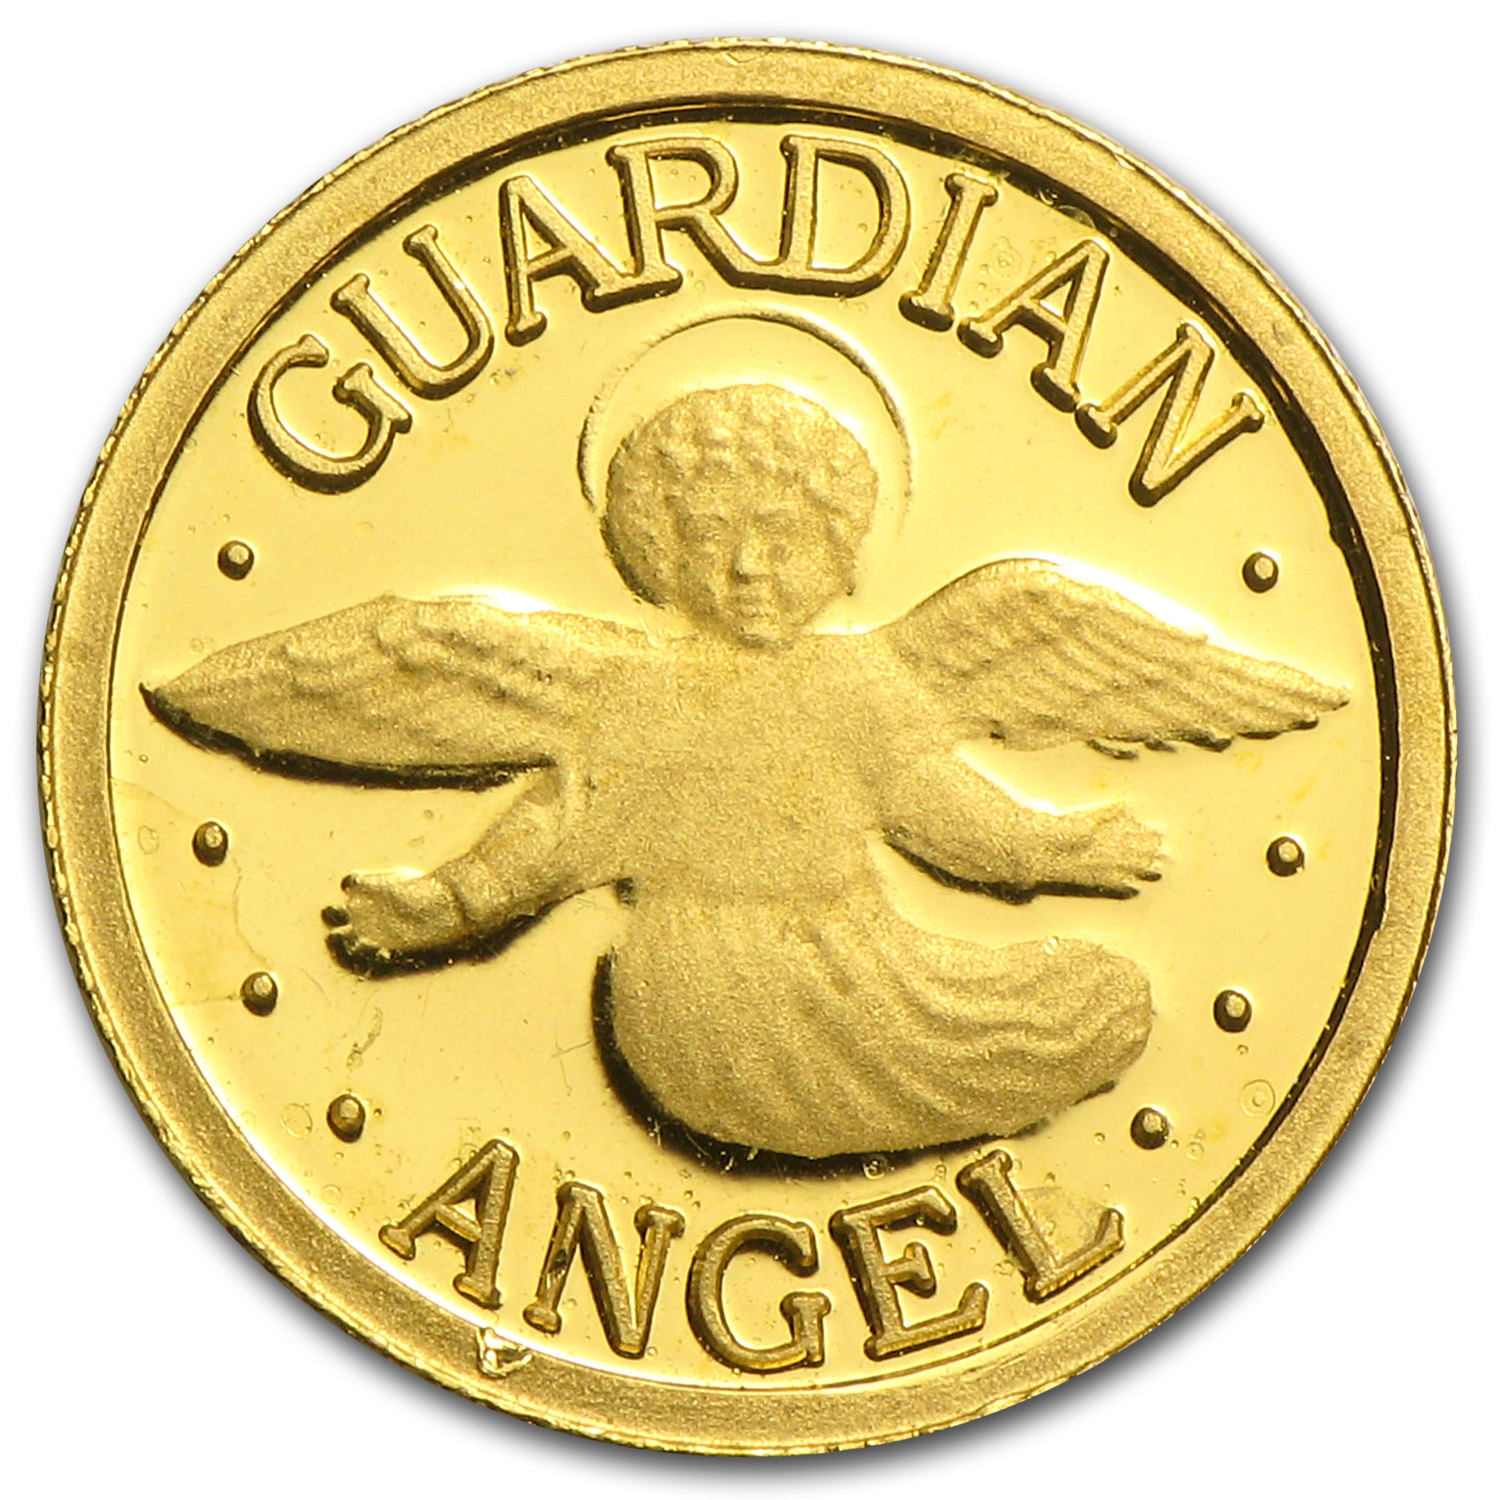 1/20 oz Gold Rounds - Secondary Market